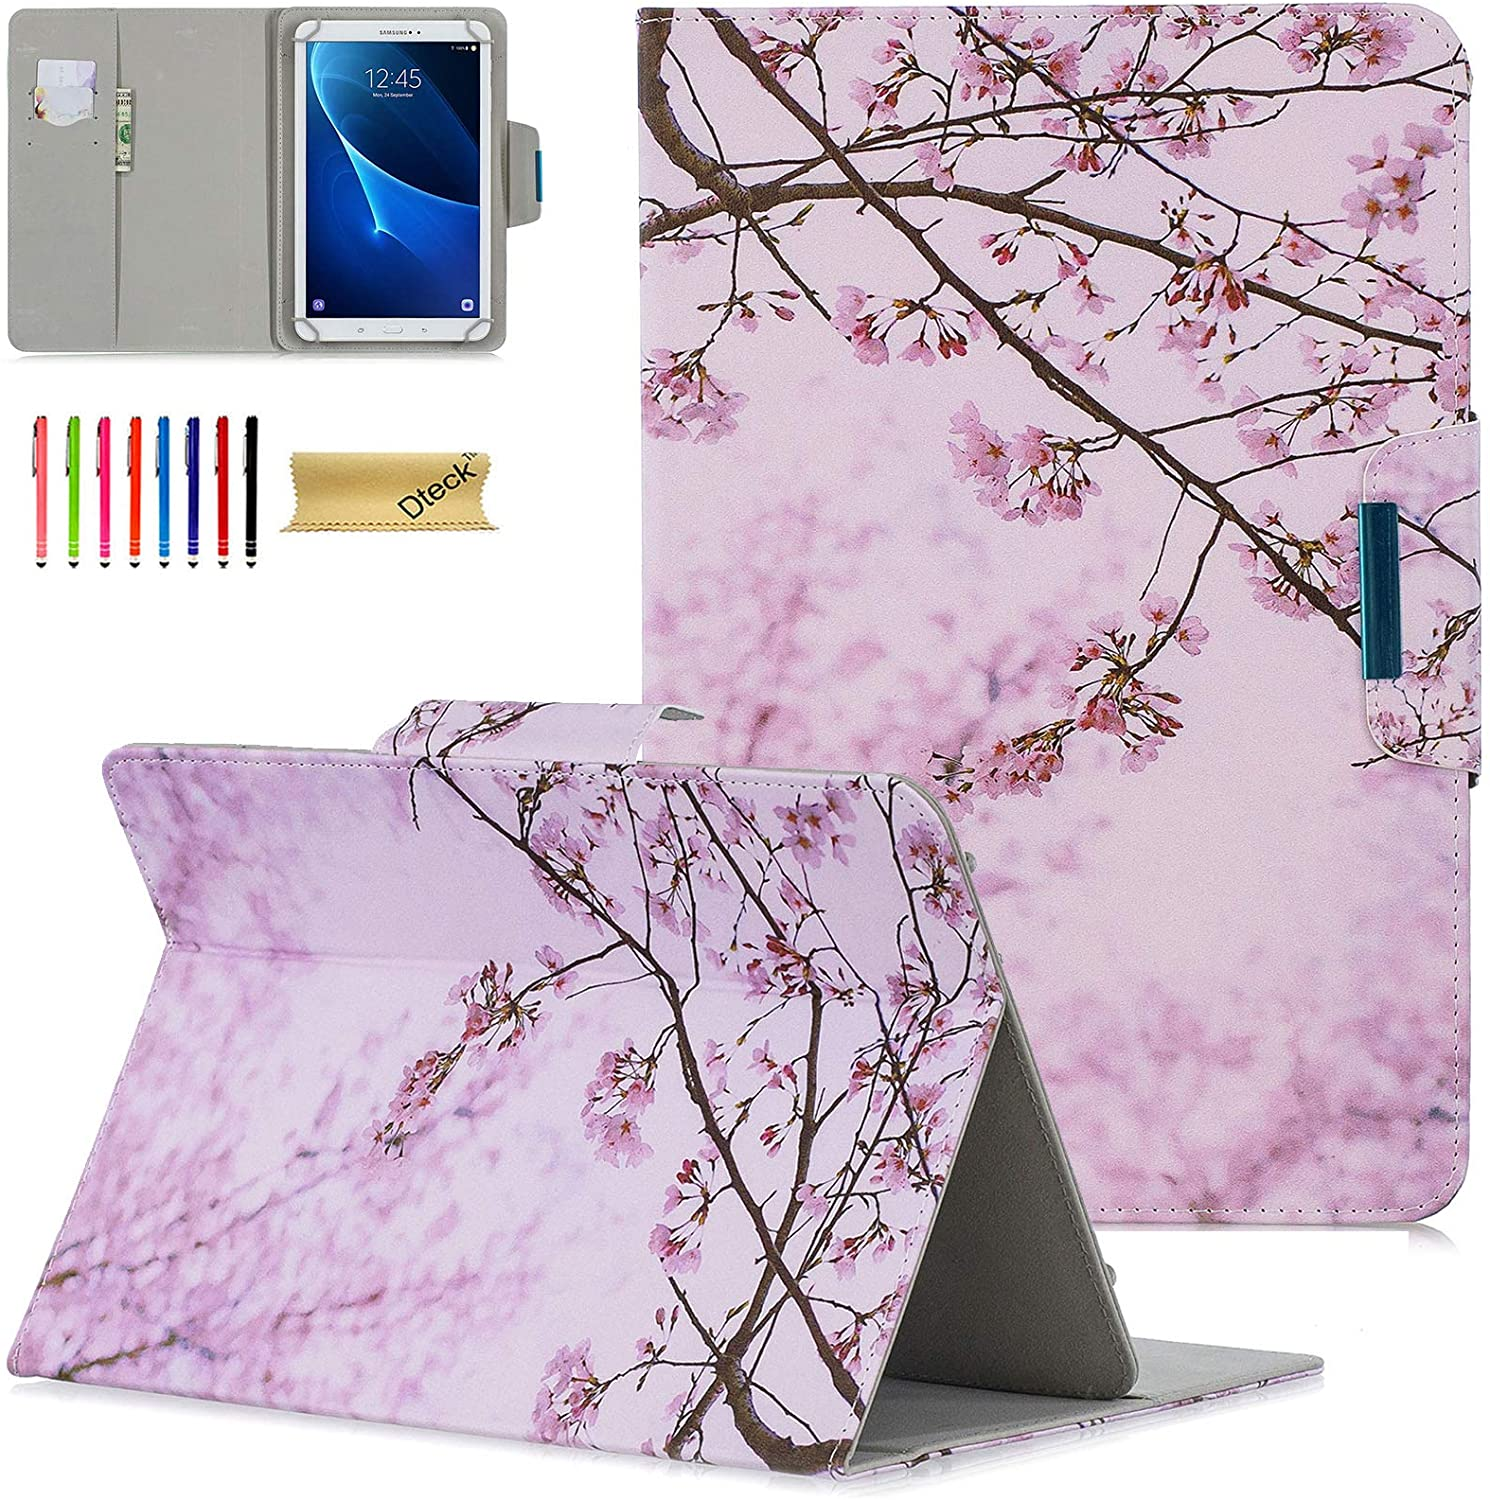 Dteck Universal Case for 9.5-10.5 Inch Tablet - Slim Light Pretty Folio Pocket Stand Case Cover for Apple iPad/Samsung/Kindle/Huawei/Lenovo/Android/Dragon Touch 9.7 9.6 10.1 10.5 Inch-Pink Floral